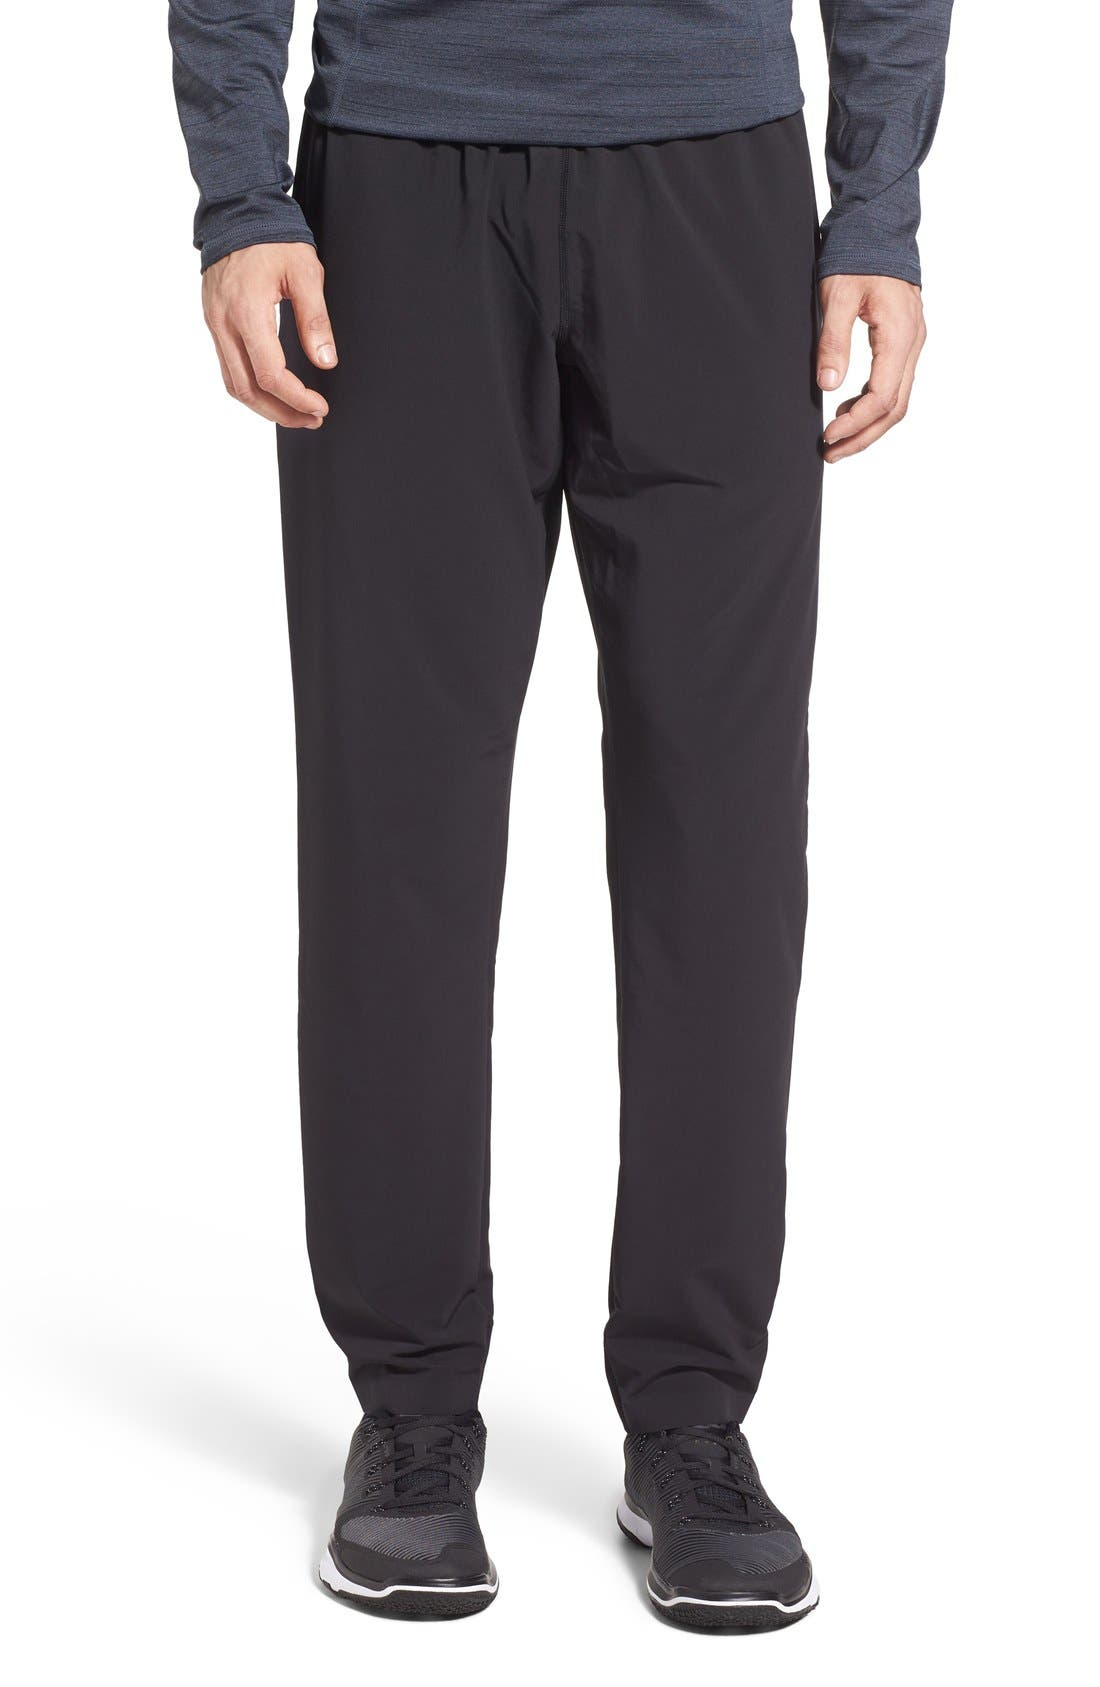 Graphite Tapered Athletic Pants,                             Main thumbnail 1, color,                             001